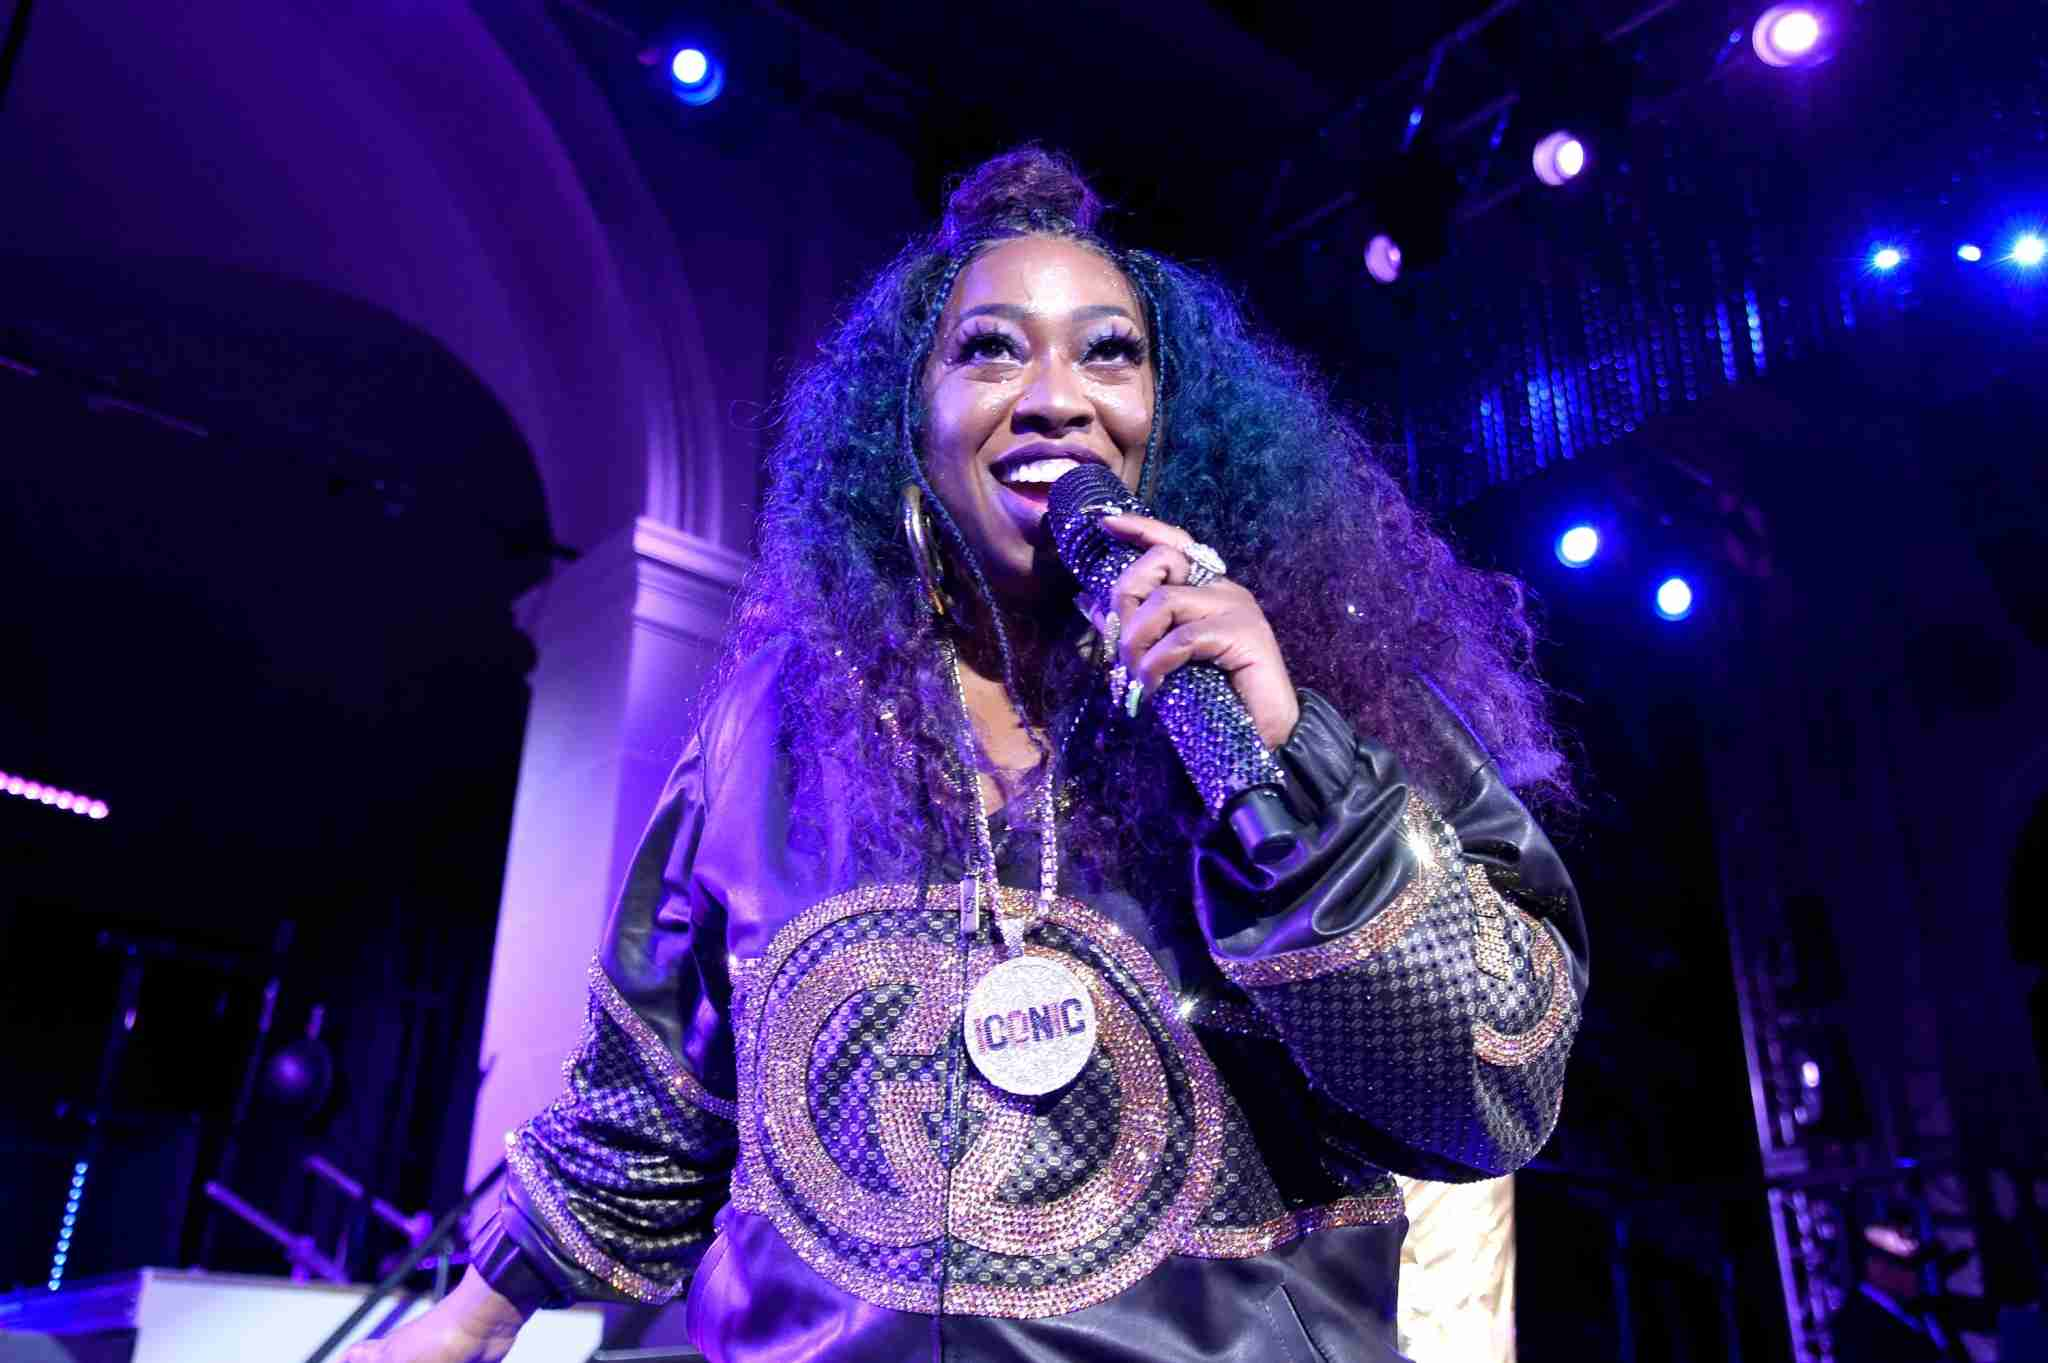 NEW YORK, NY - SEPTEMBER 10: Missy Elliott performs her chart-topping hits at the Yellow Ball, hosted by American Express and Pharrell Williams, at the Brooklyn Museum on September 10, 2018 on September 10, 2018 in New York, New York. (Photo by Kevin Mazur/Getty Images for American Express)